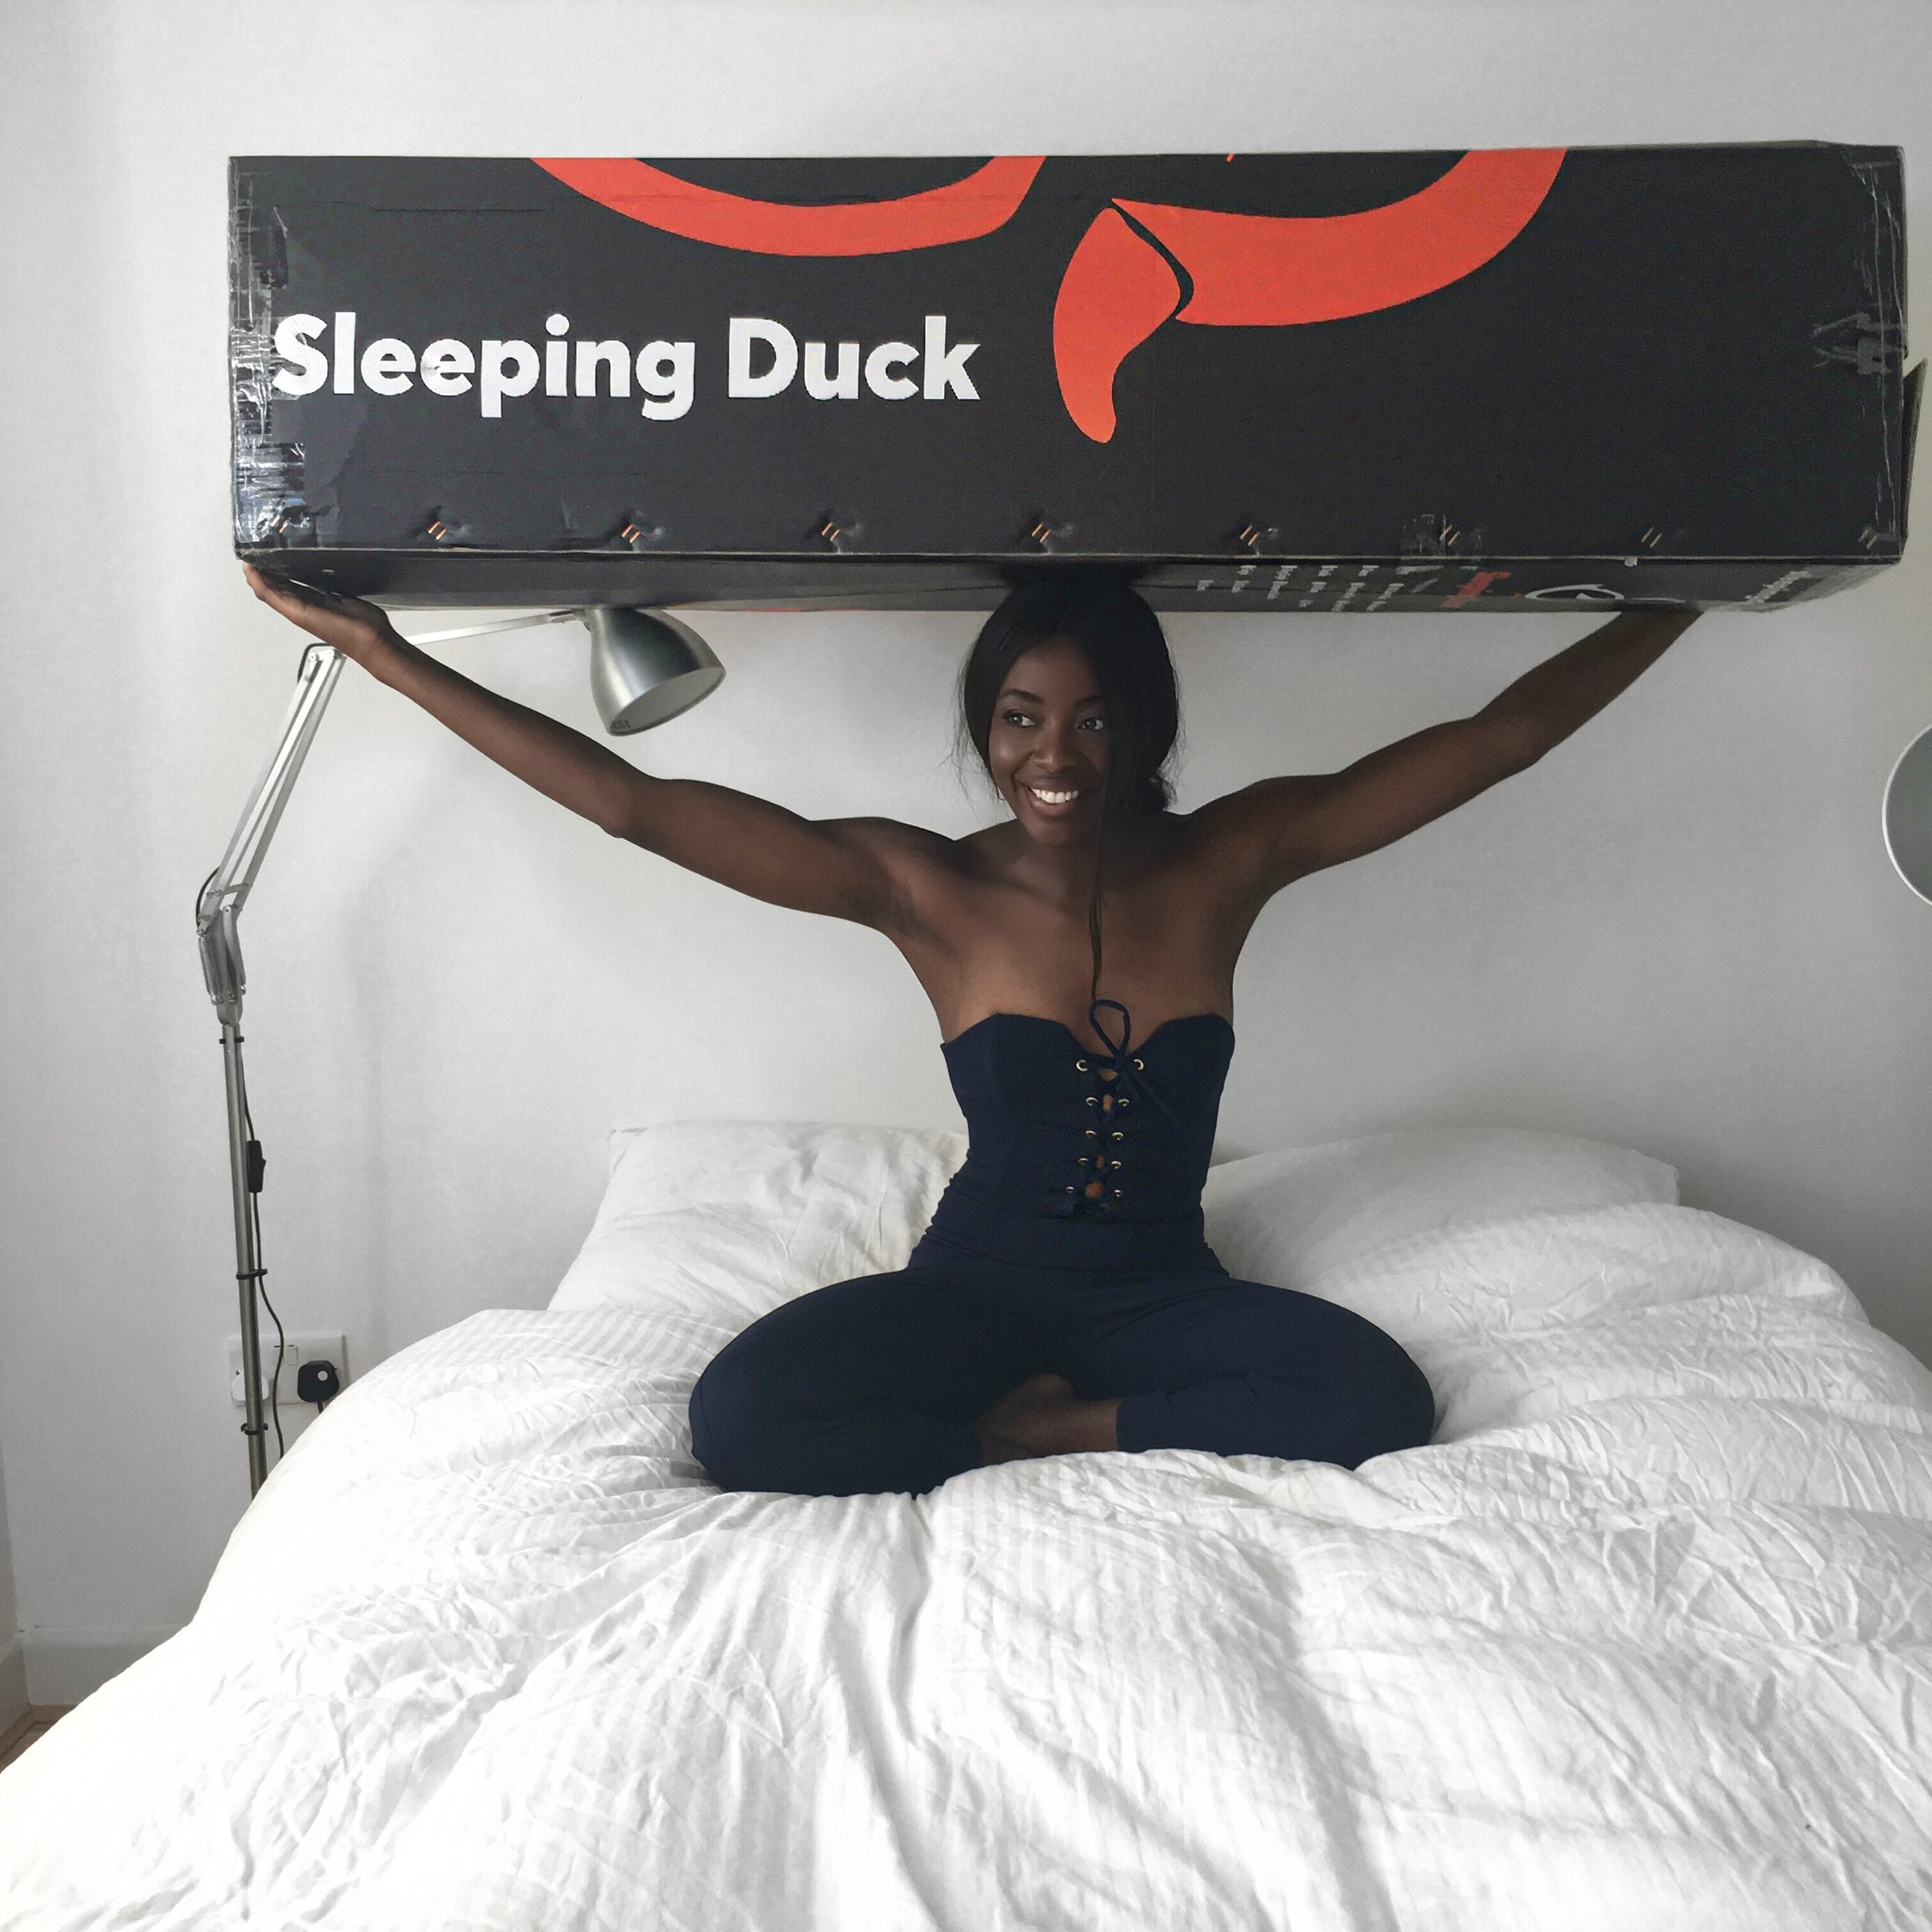 Sleeping Duck Mattress